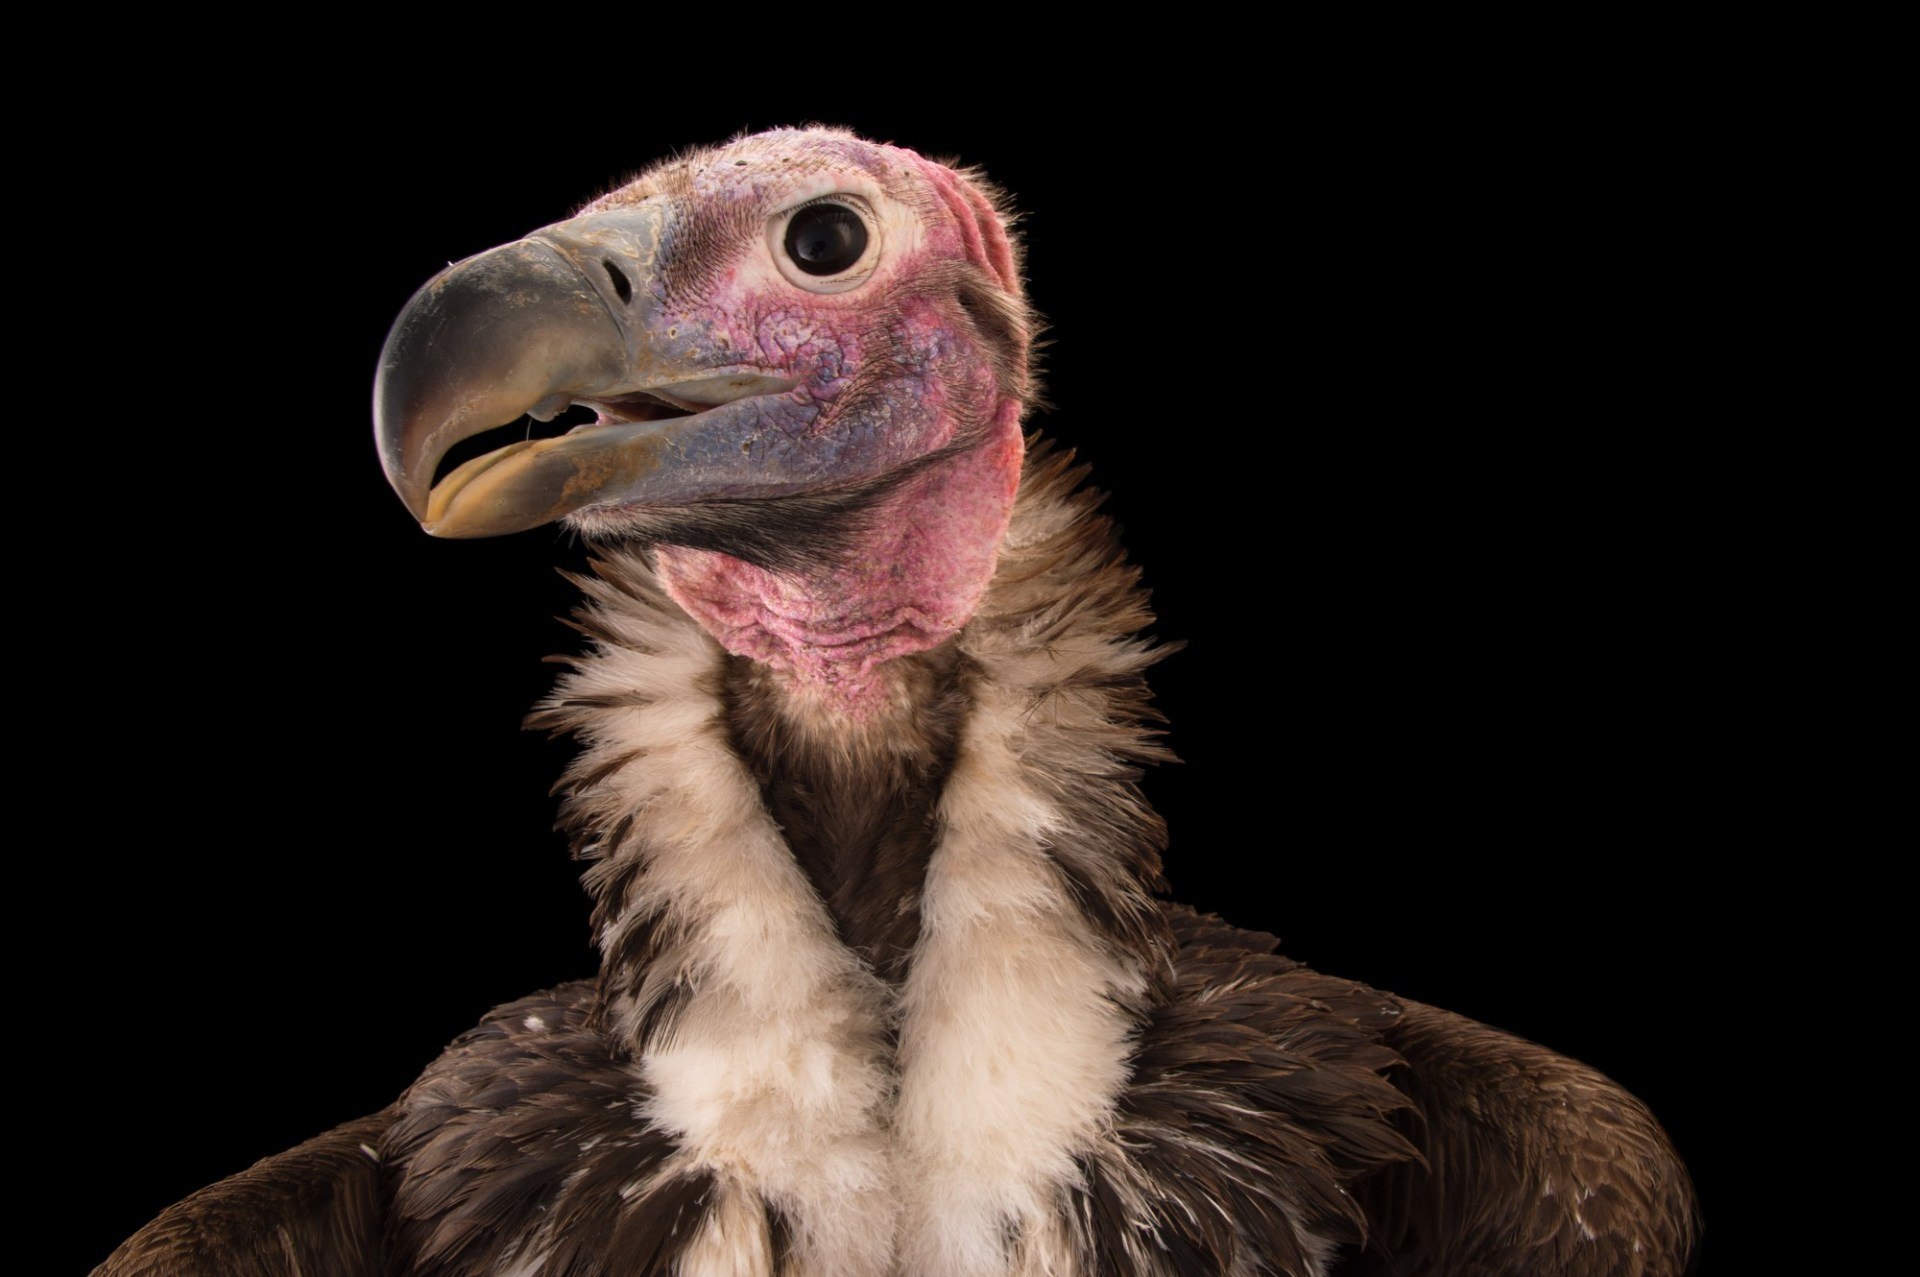 An endangered lappet-faced vulture (Torgos tracheliotos) at Zoo Atlanta.